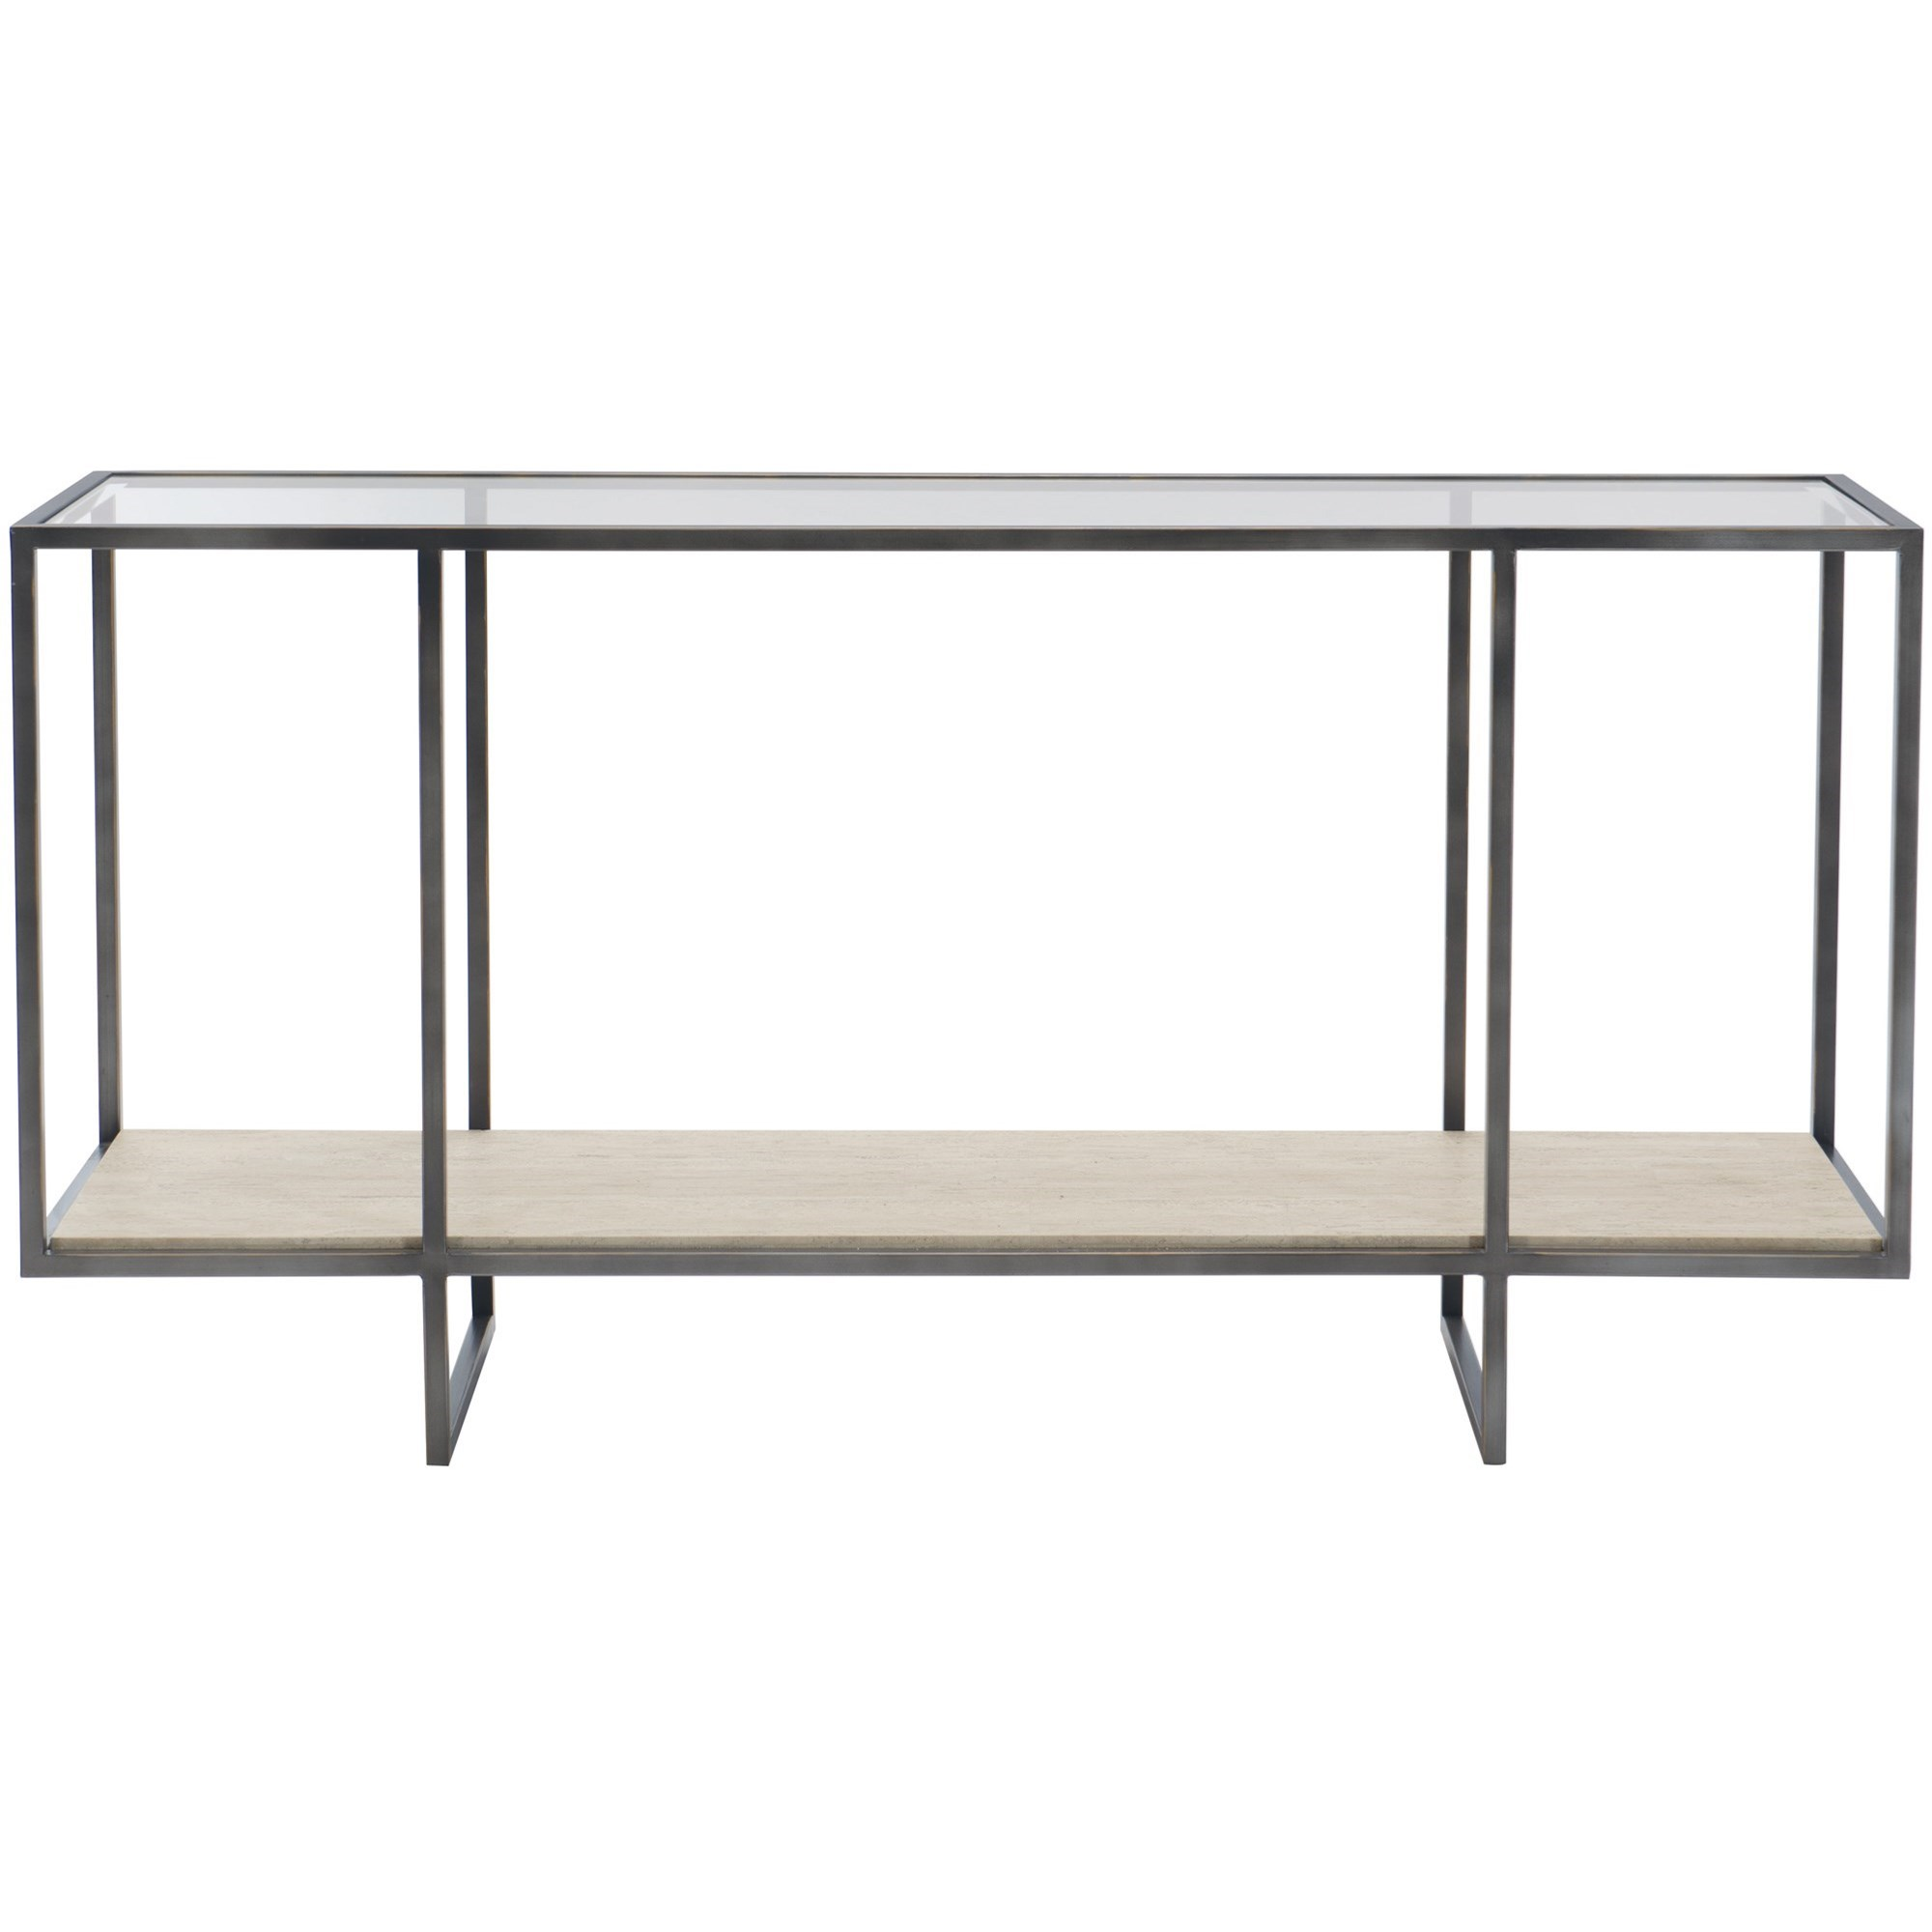 Harlow Metal Console Table by Bernhardt at Darvin Furniture